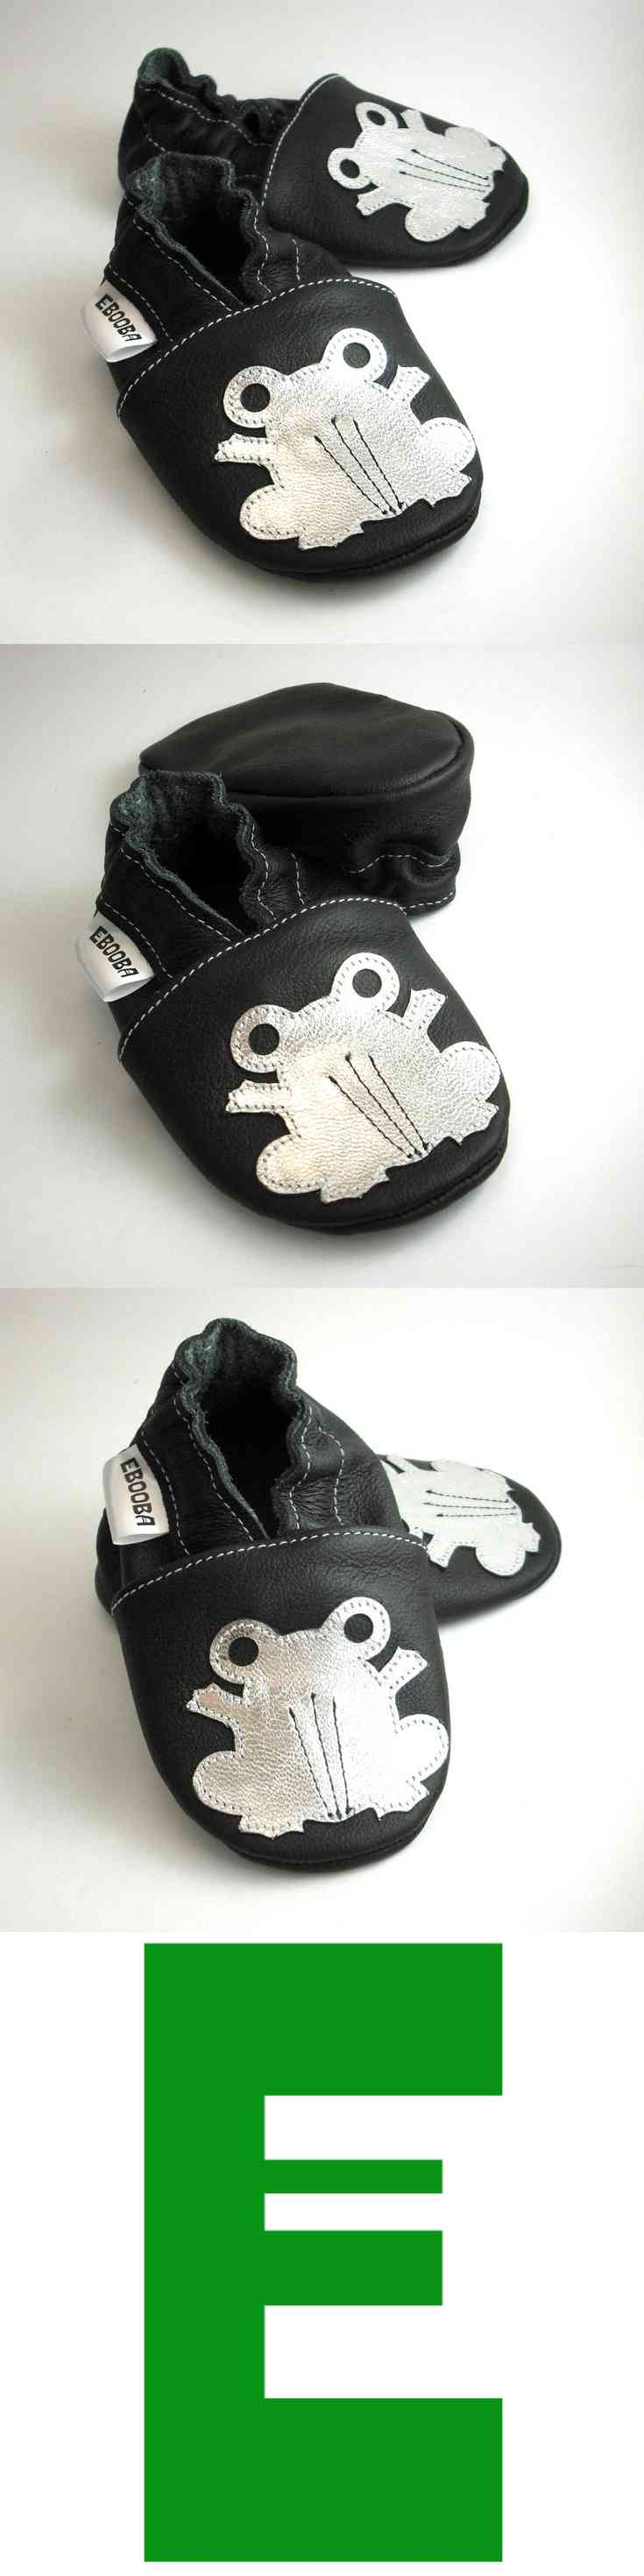 soft sole baby shoes leather infant girl boy t frog silver black